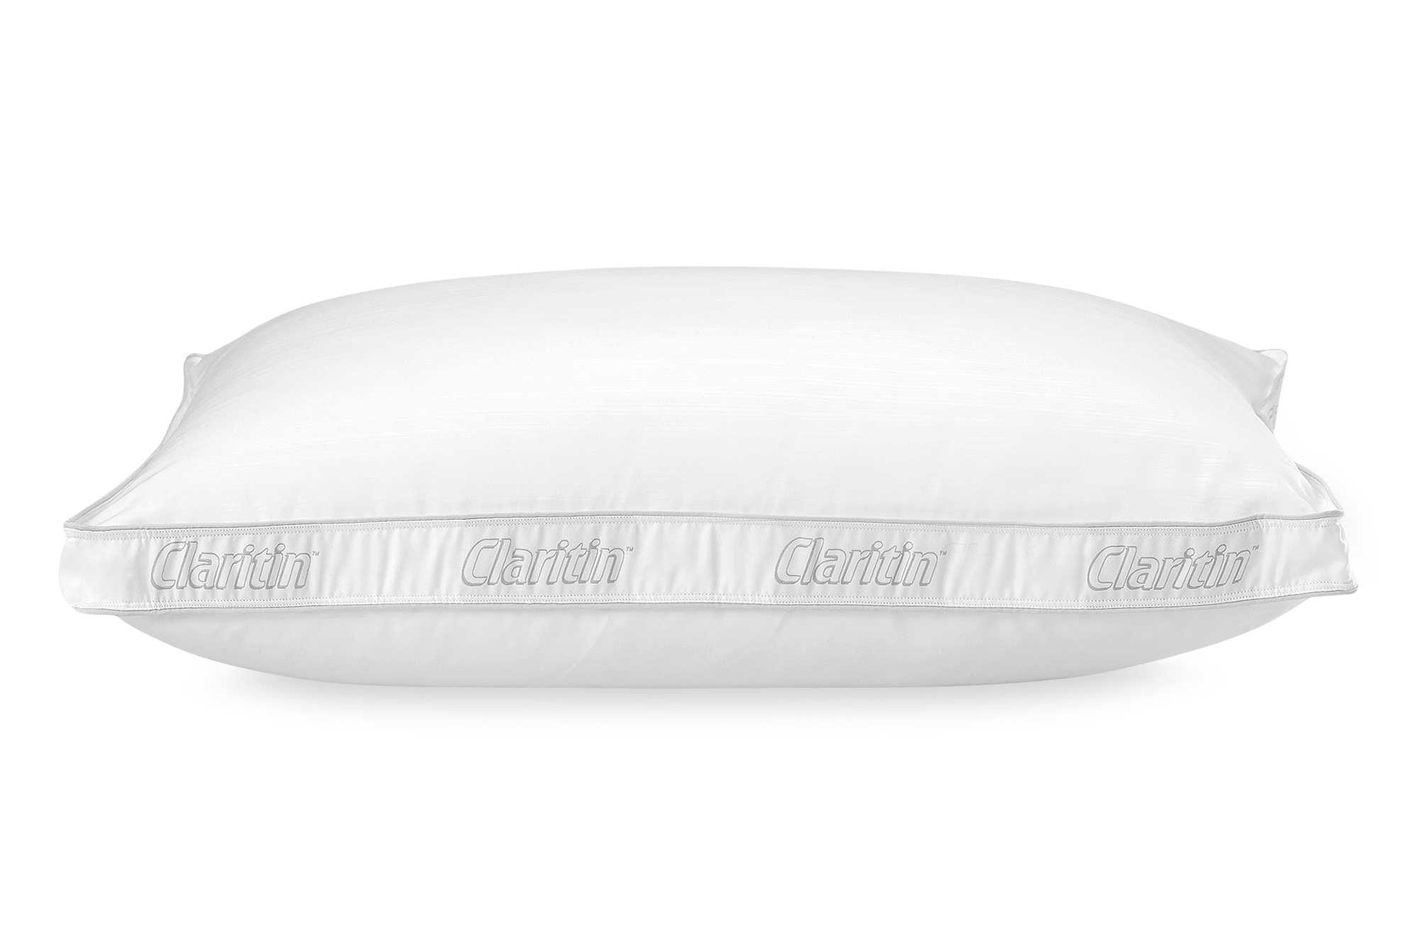 foam side comfort pillow detail music smart pillows product promote sleeper memory orthopedic sleeping